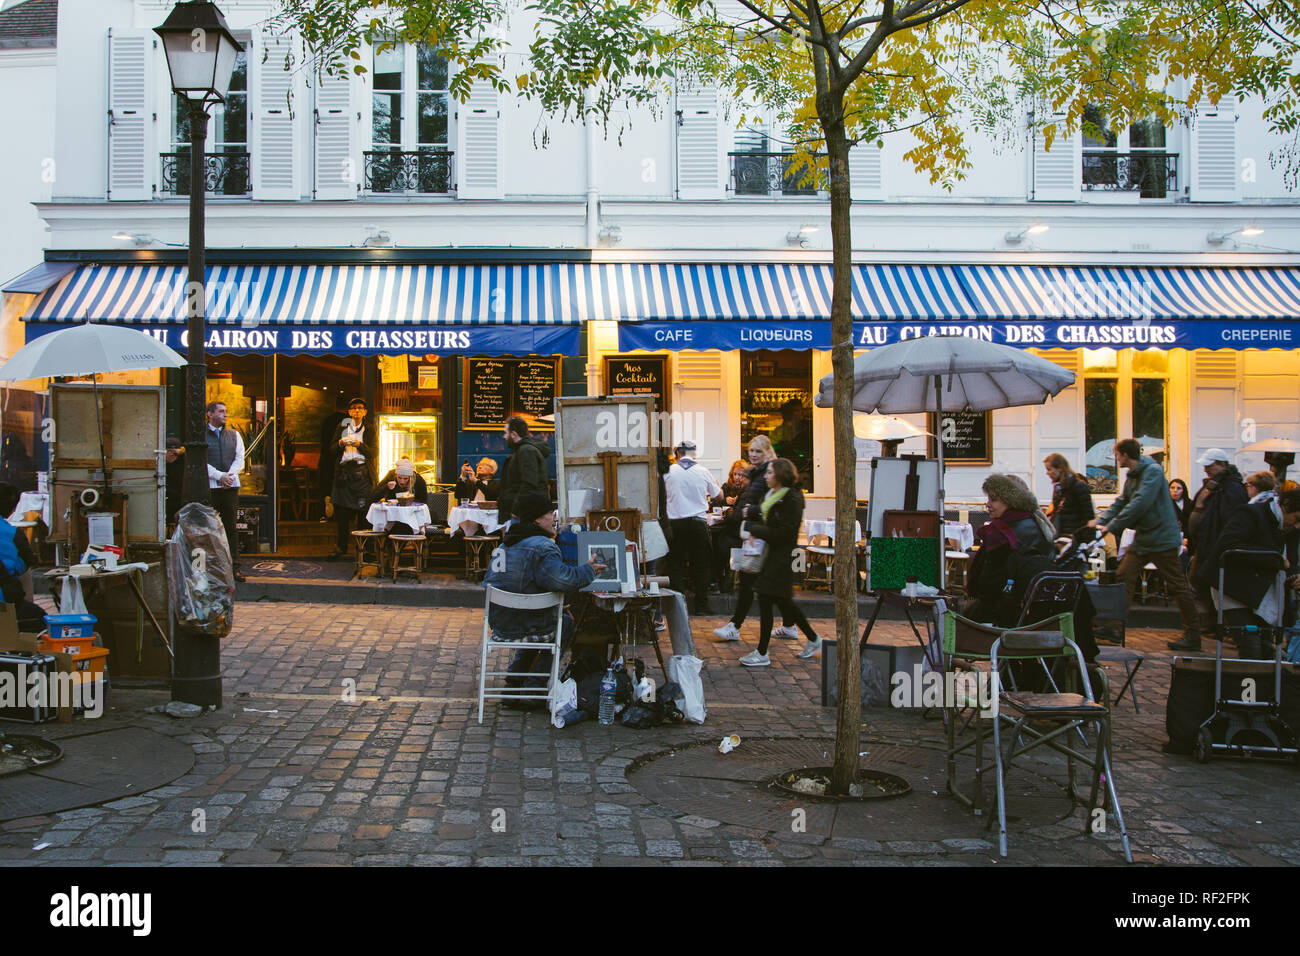 PARIS, FRANCE - NOVEMBER 9, 2018 - Cozy street with cafe and painters in Montmartre, Paris Stock Photo